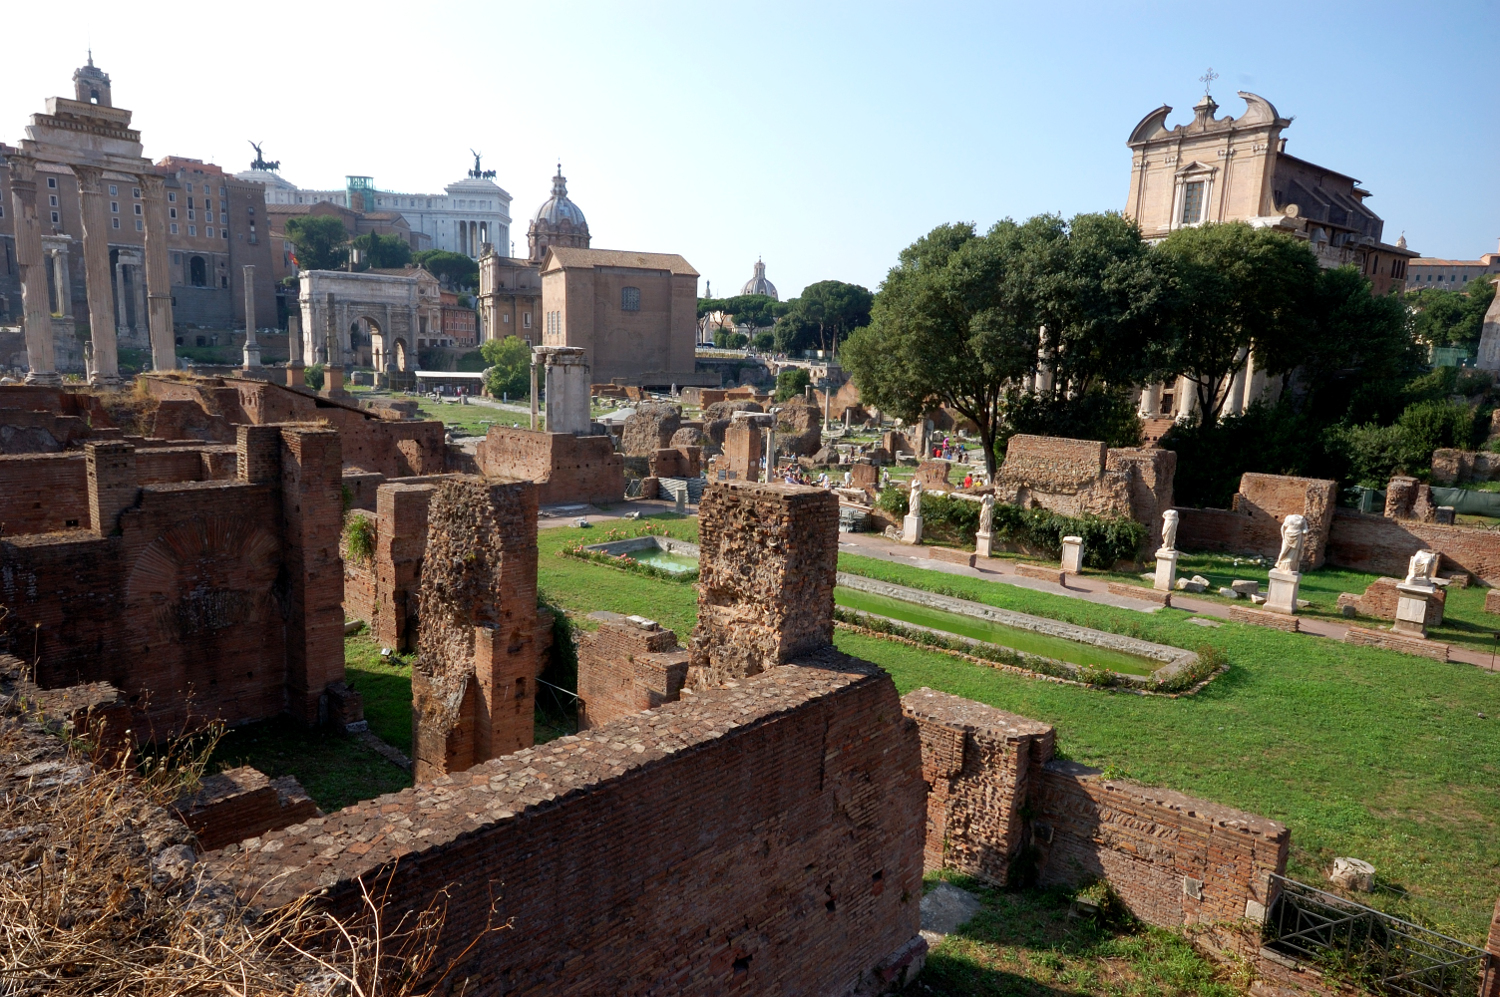 Rome historic centre, Italy is a UNESCO World Heritage Site in Europe. Read this article and discover the must-see UNESCO Heritage Sites in Europe recommended by travel bloggers. #UNESCO #unescosites #unescositeseurope #europeunesco #italyunesco #italy